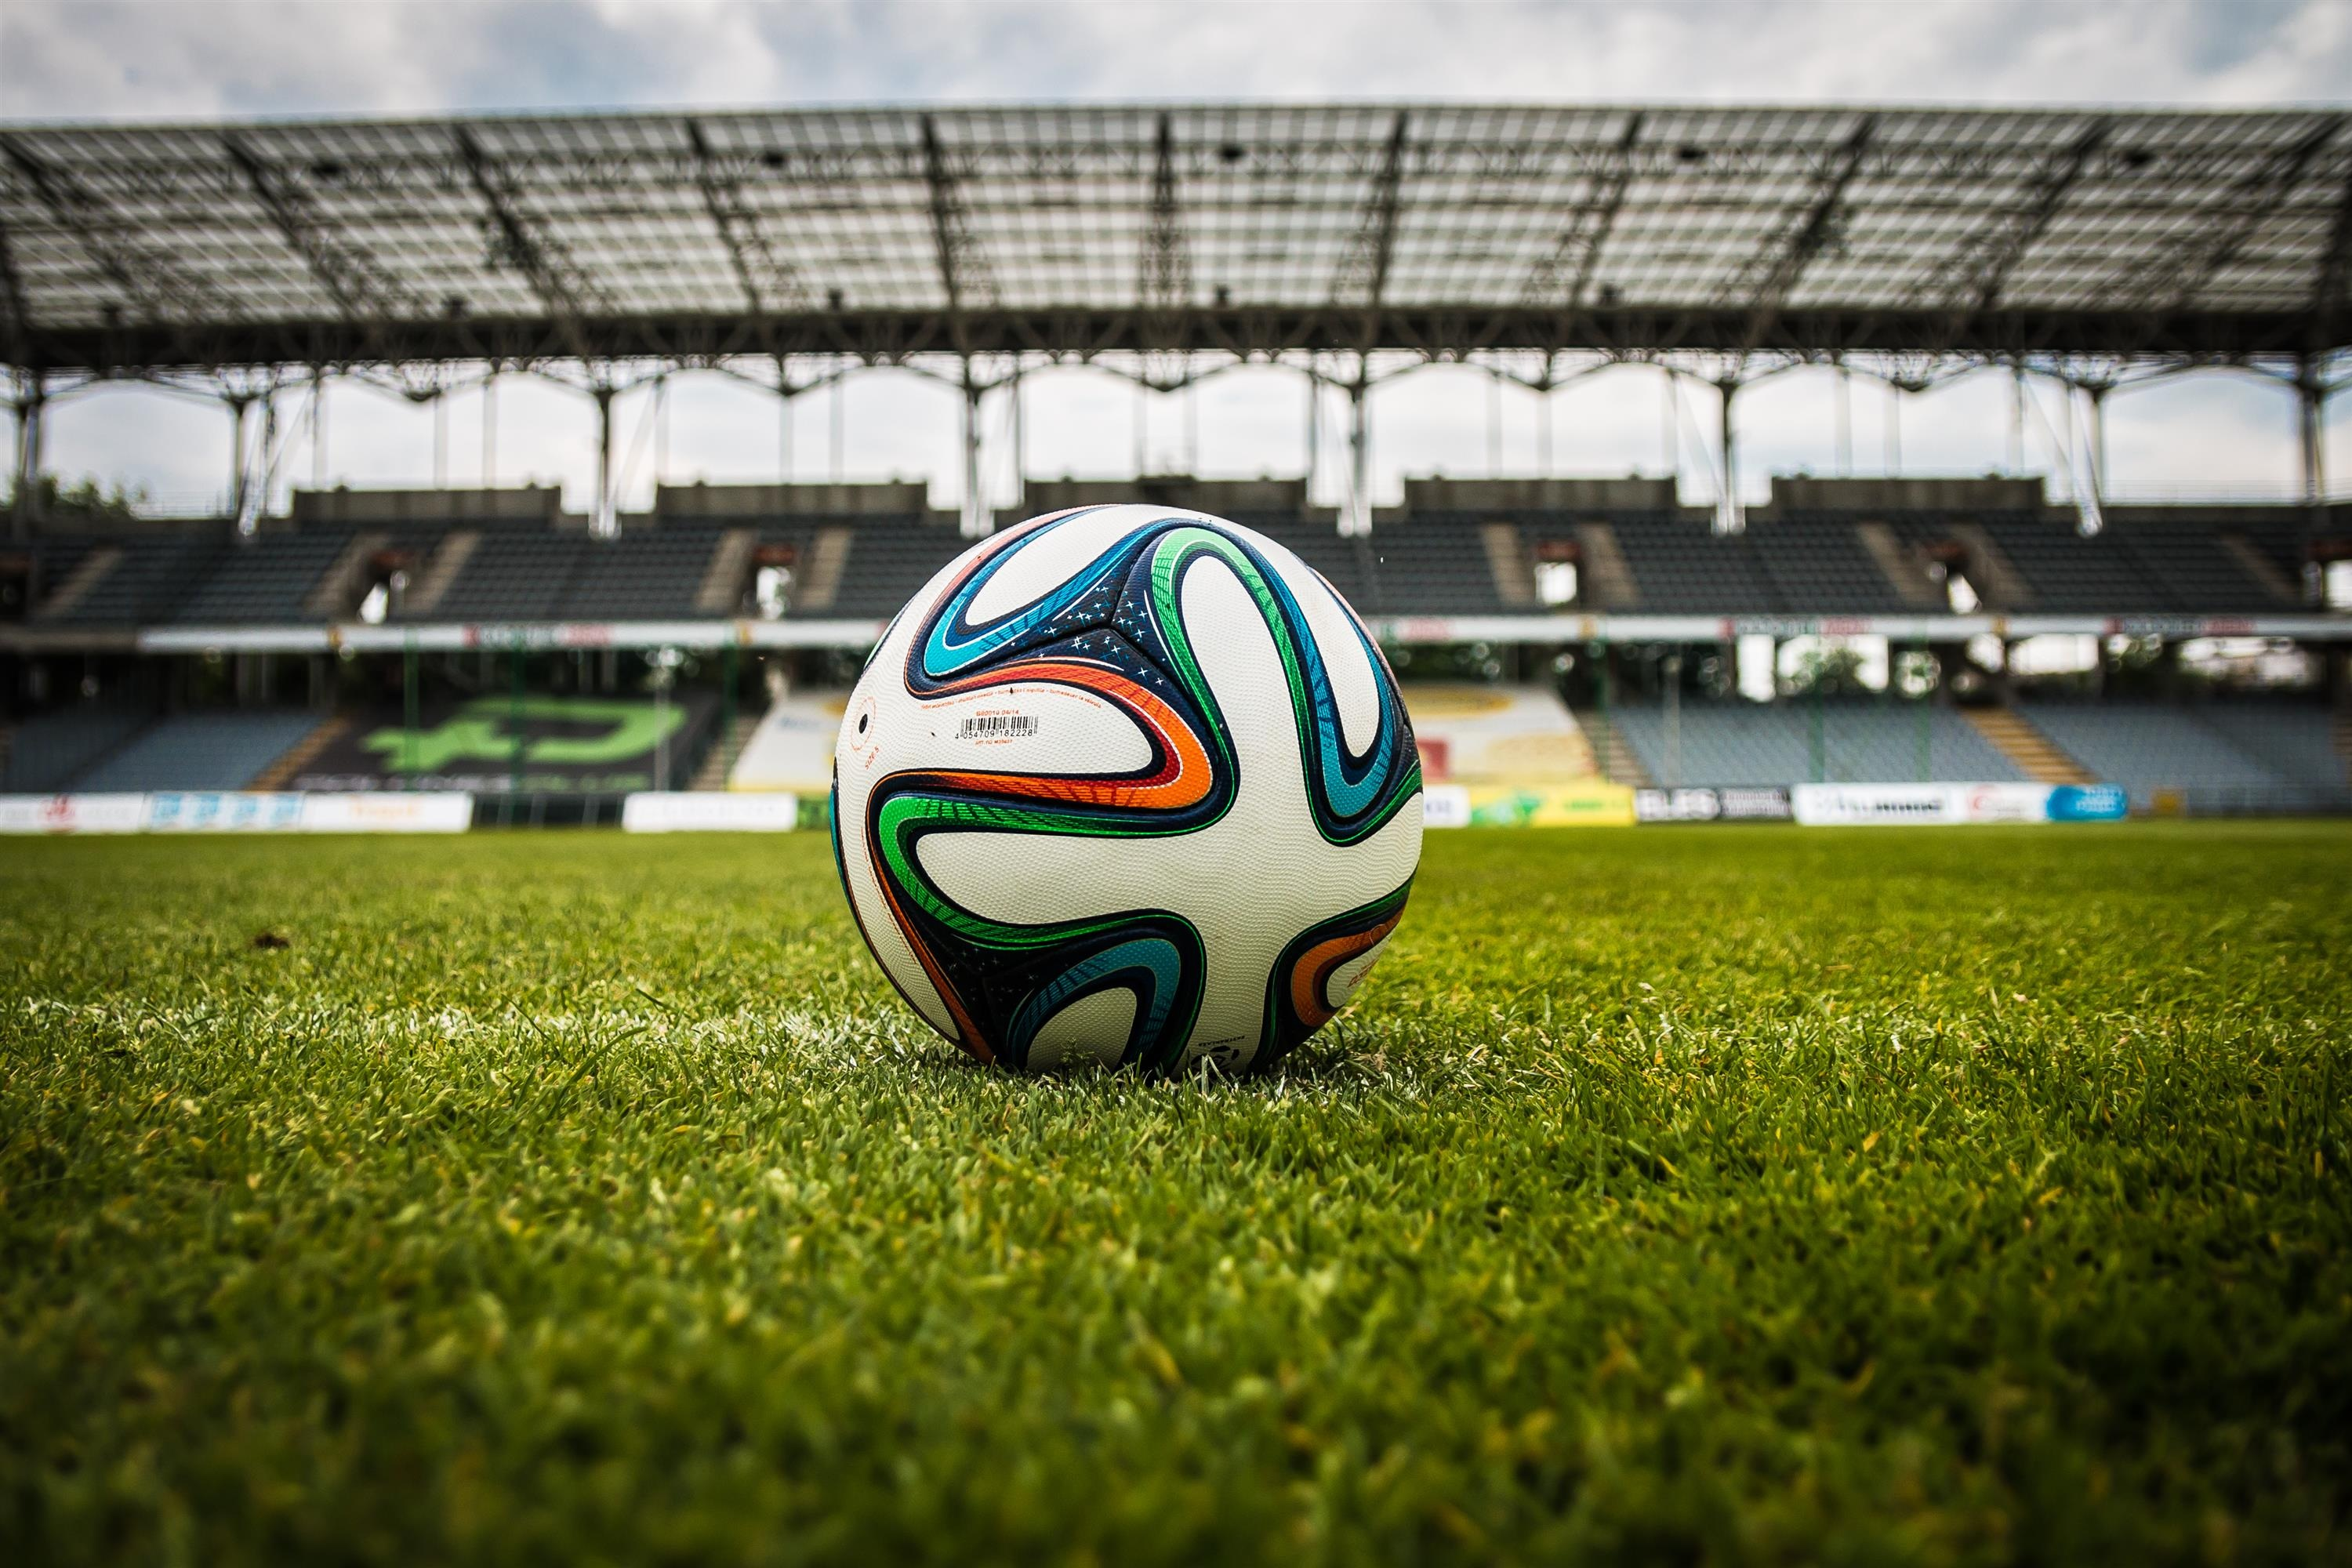 61021 download wallpaper Sports, Football, Ball, Lawn, Stadium screensavers and pictures for free